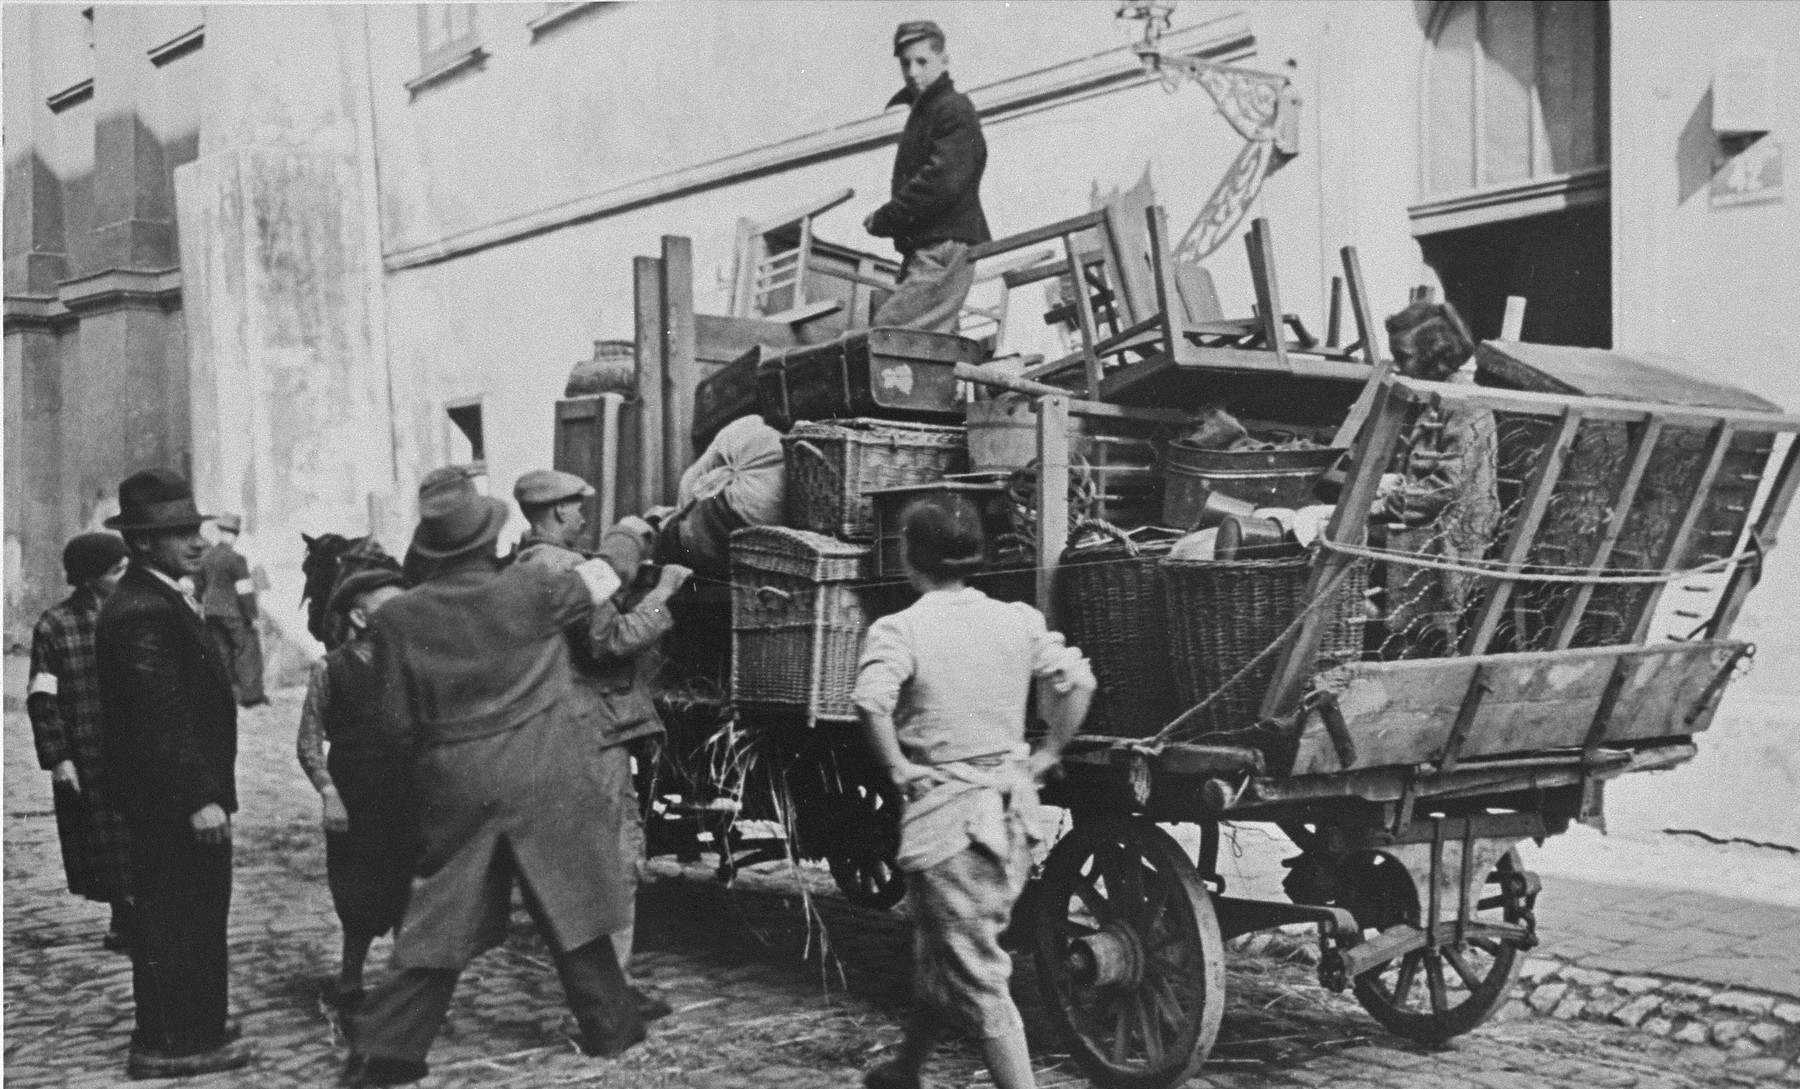 Forced to relocate to the Krakow ghetto, Jews move their belongings in horse-drawn wagons.